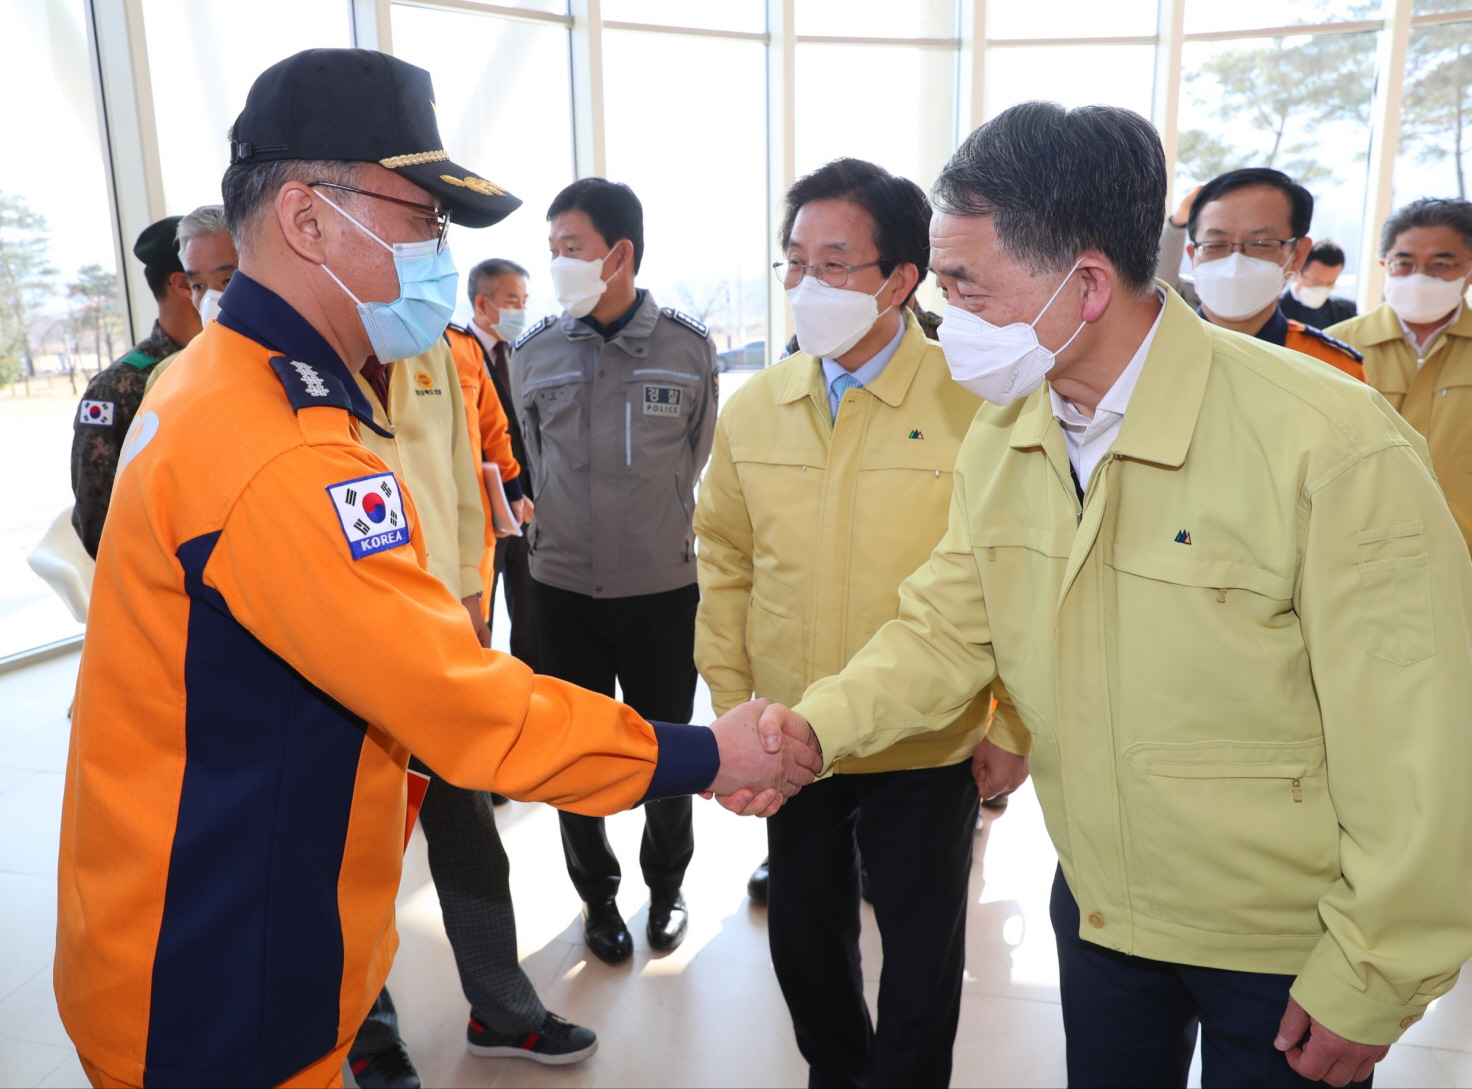 Park Neung-hoo, Vice Head 1 of the Central Disaster and Safety Countermeasures Headquarters, Attends the Opening Ceremony of the Gyeongbuk Daegu 3 Community Treatment Center (Mun-gyeong Seoul National University Hospital Training Center)2